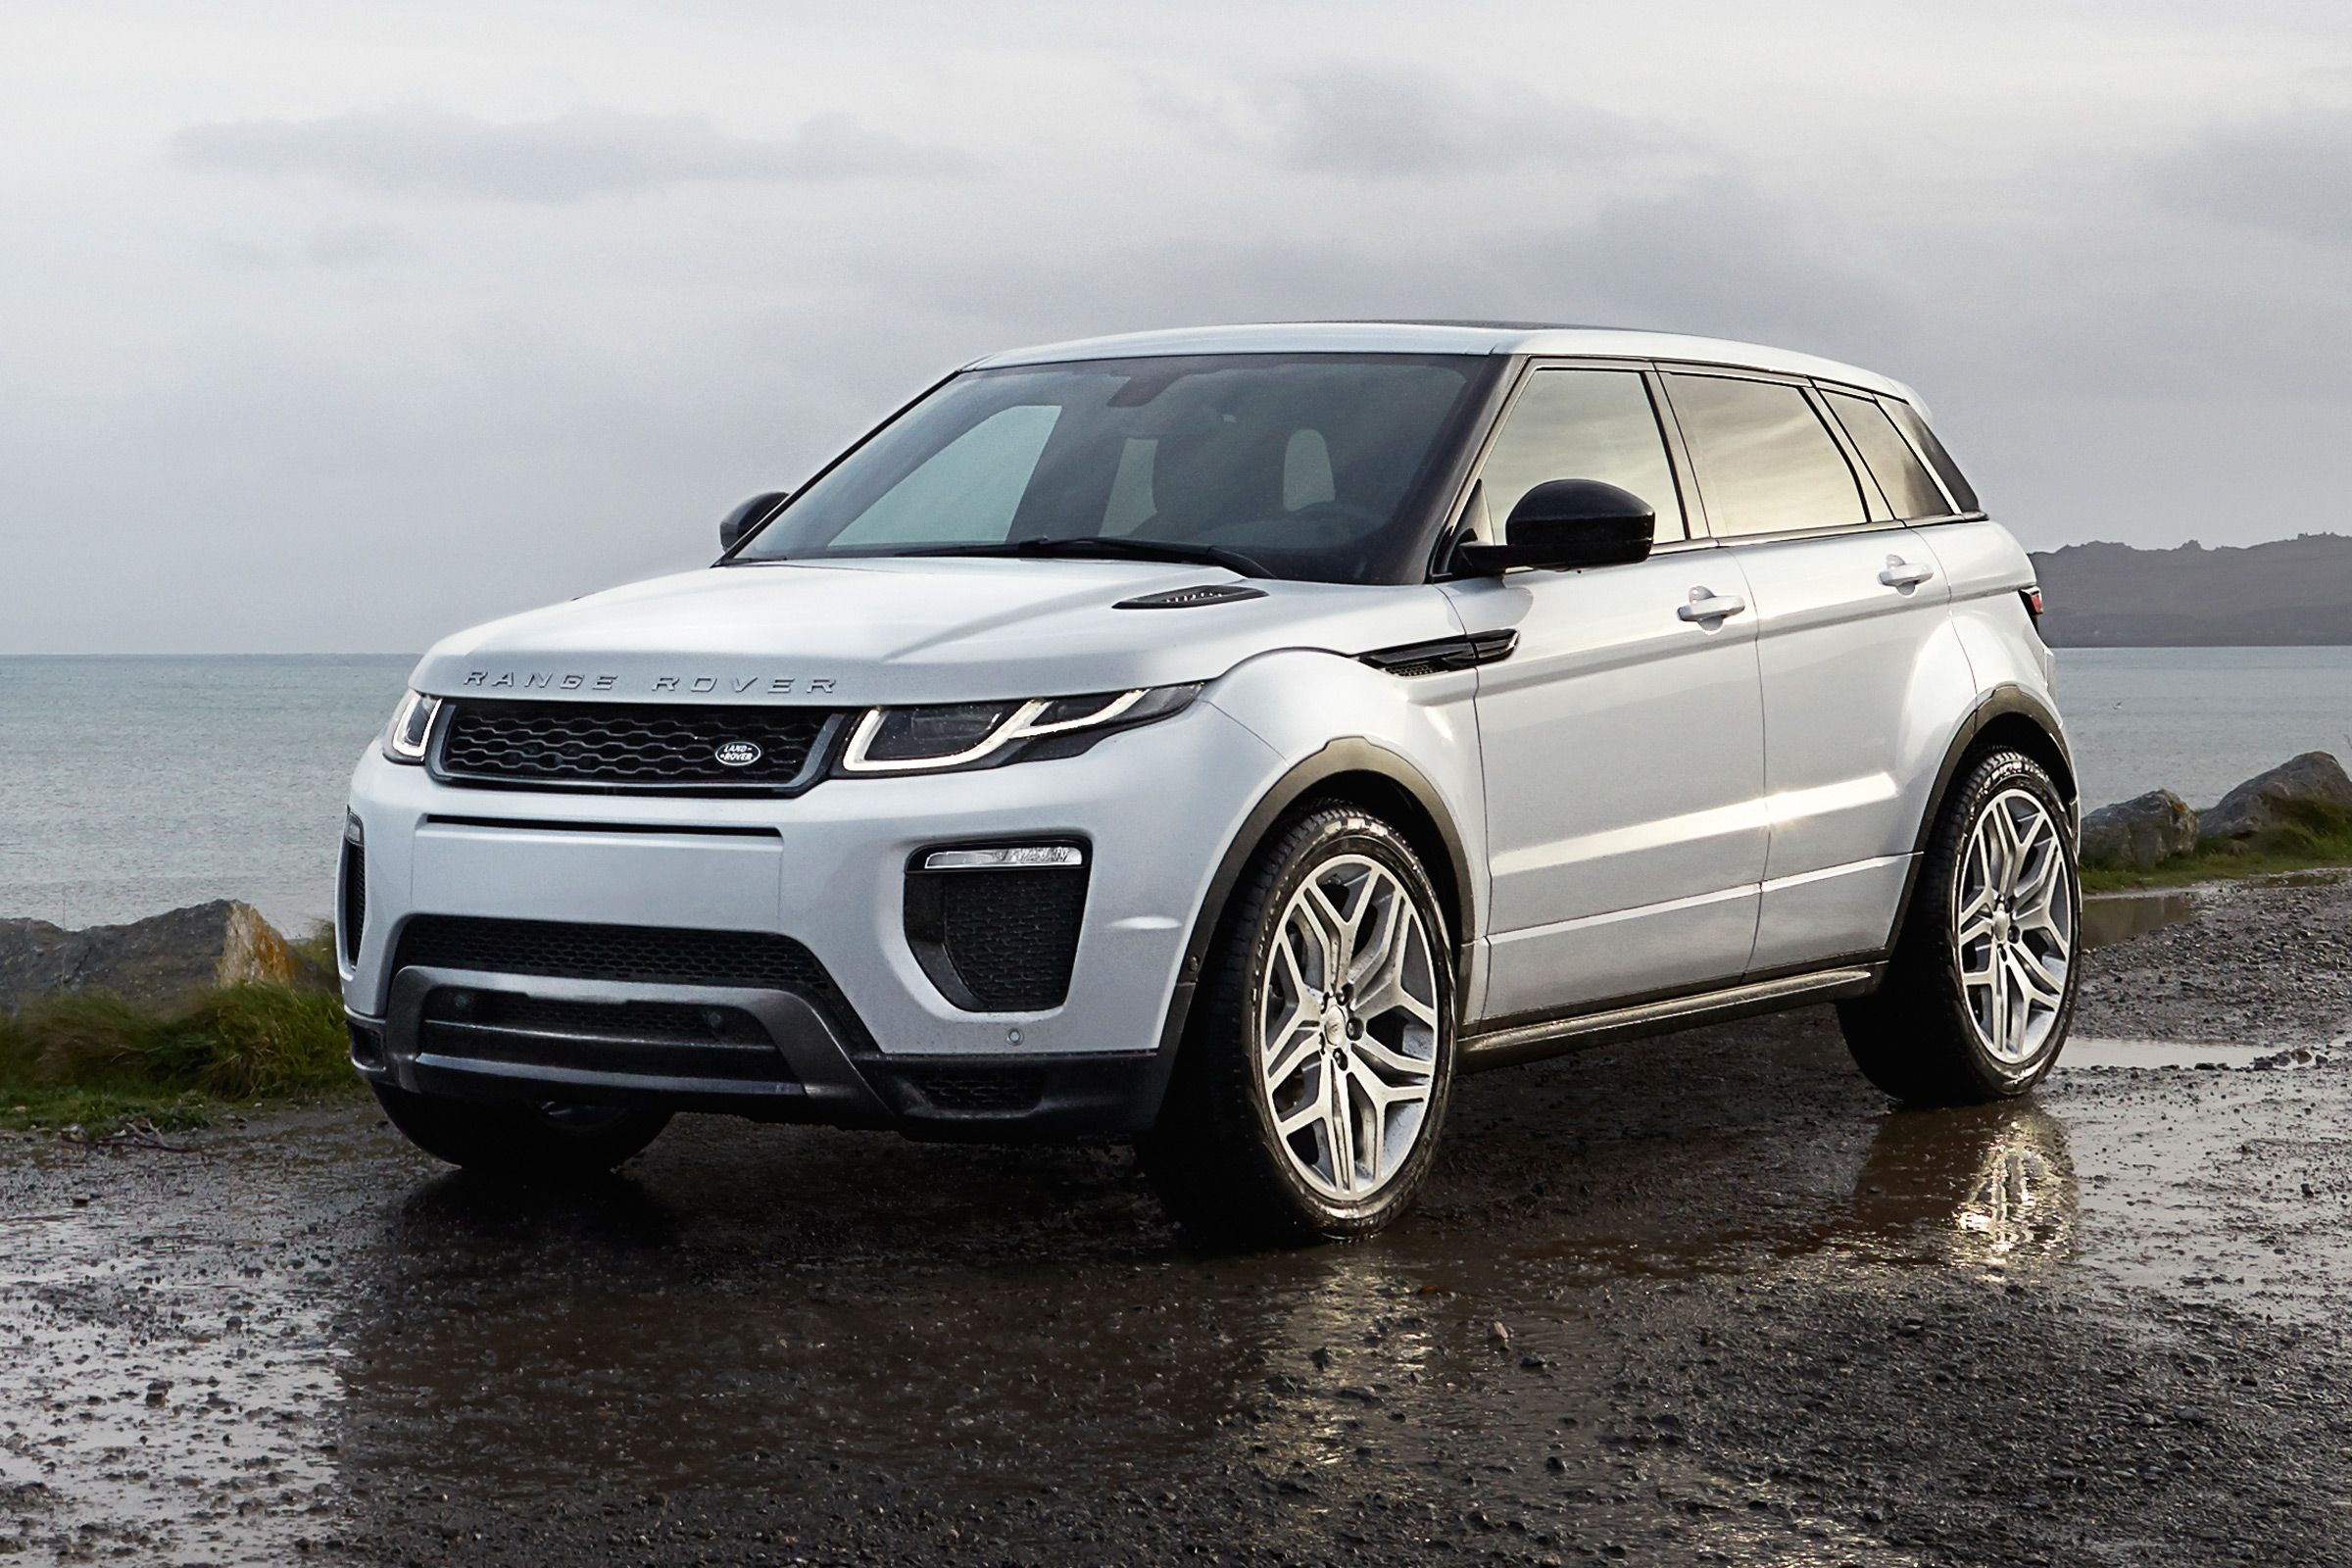 Range Rover Evoque Vossen CVT Awesome machines